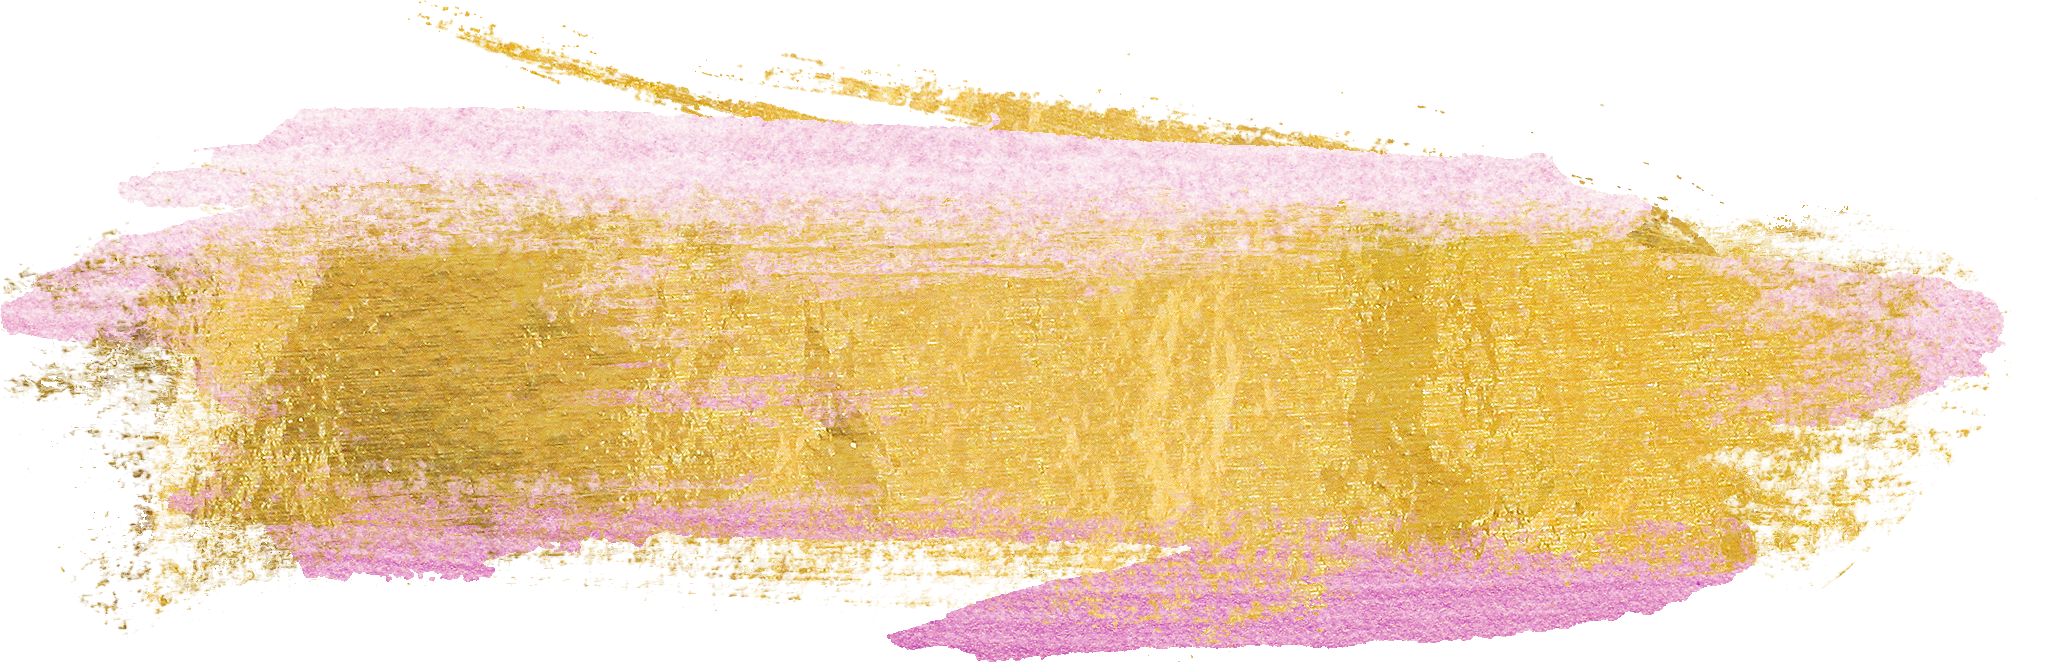 Pink And Gold PNG - 159943